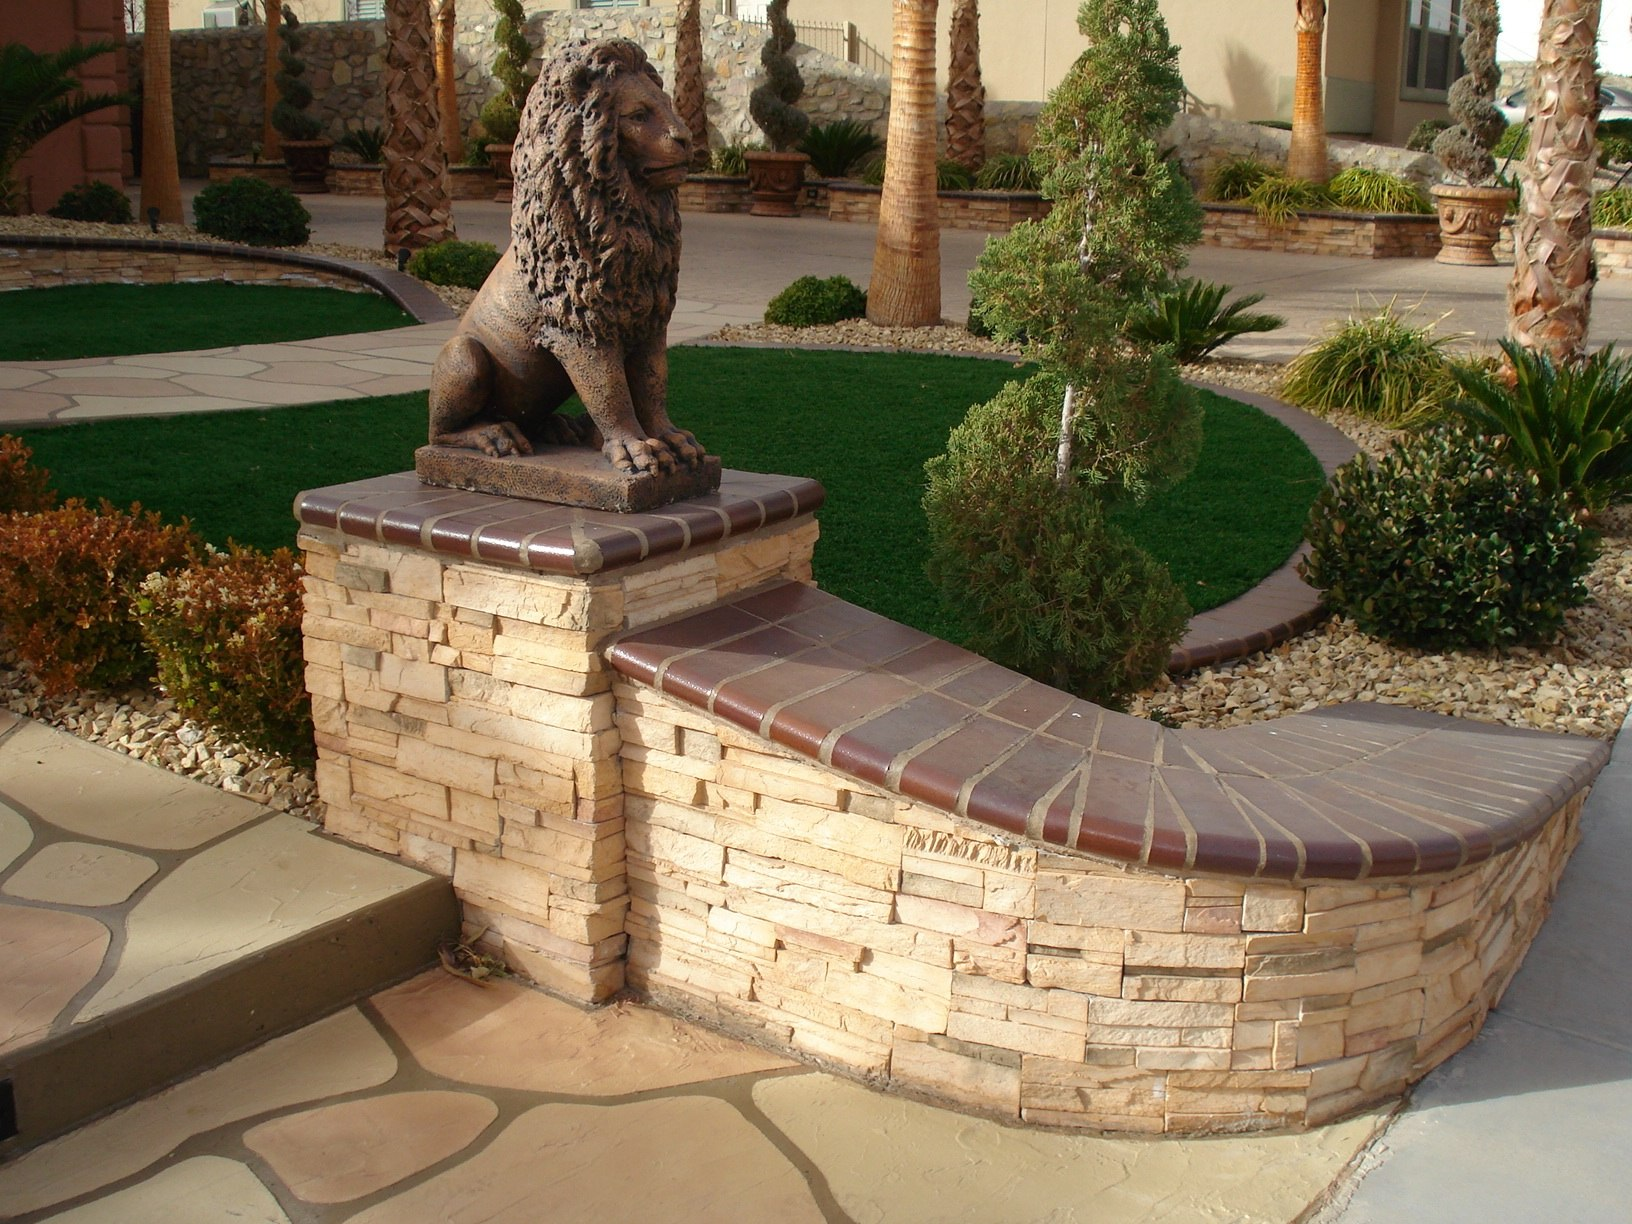 Landscaping Gravel El Paso Tx : Stone veneer adding class and style to the frontscape of this home